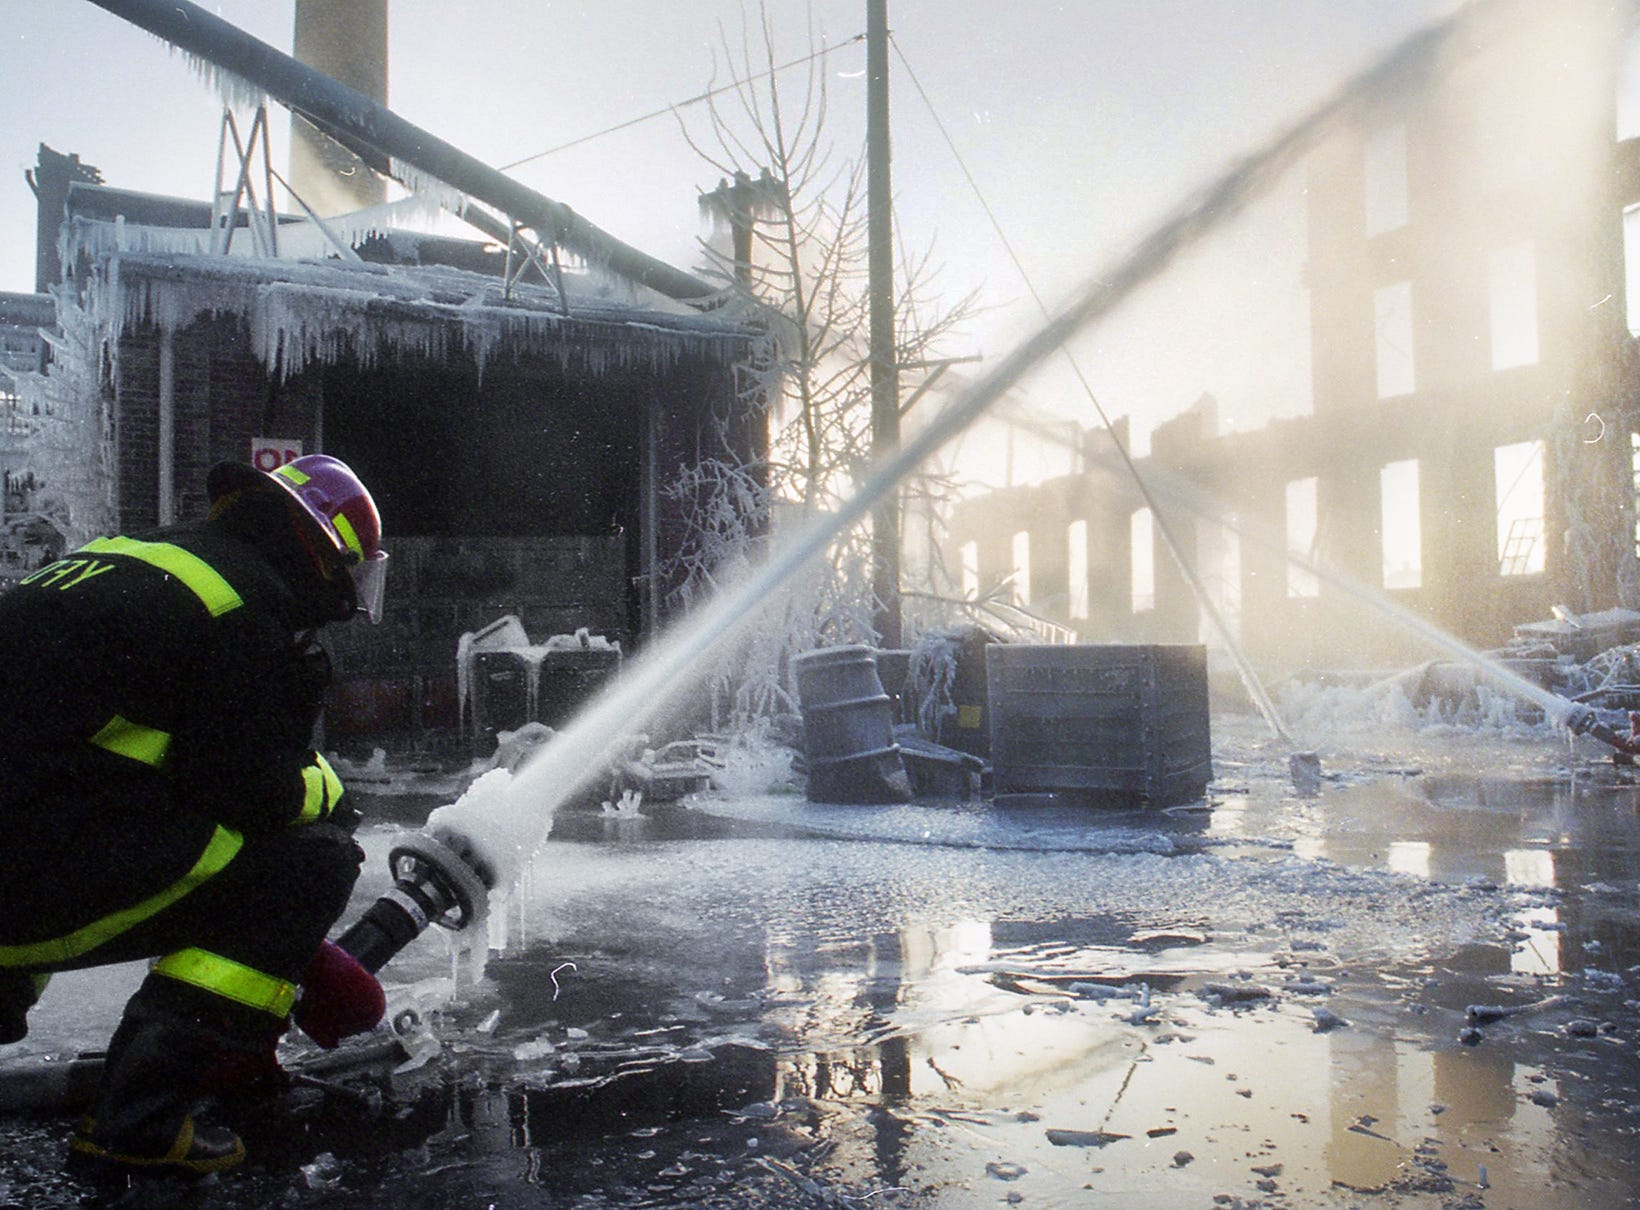 As the sun rises behind the Thonet ruins, a firefighter fights with ice to keep water on the smoldering building. A fire began at the former Thonet Furniture plant at 491 East Princess Street on December 11, 1993. Eventually, the four alarm fire spread through the complex of buildings and several other properties.